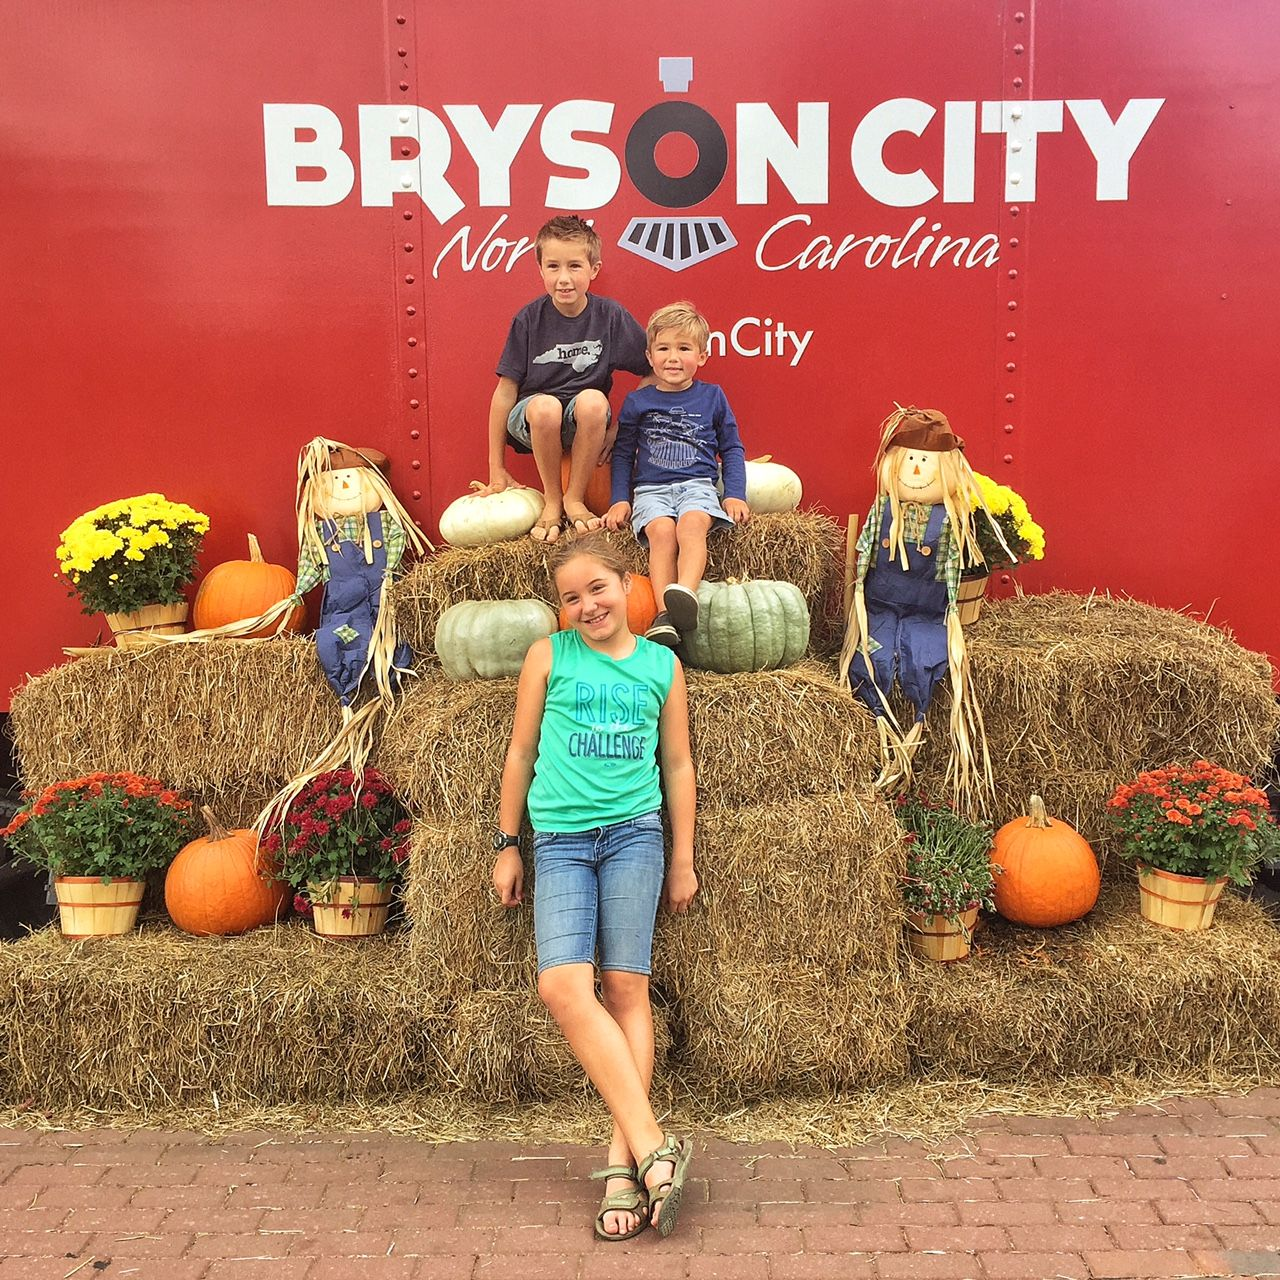 Living a simple, creative life in small town USA. Bryson City. A Lifestyle Blog.